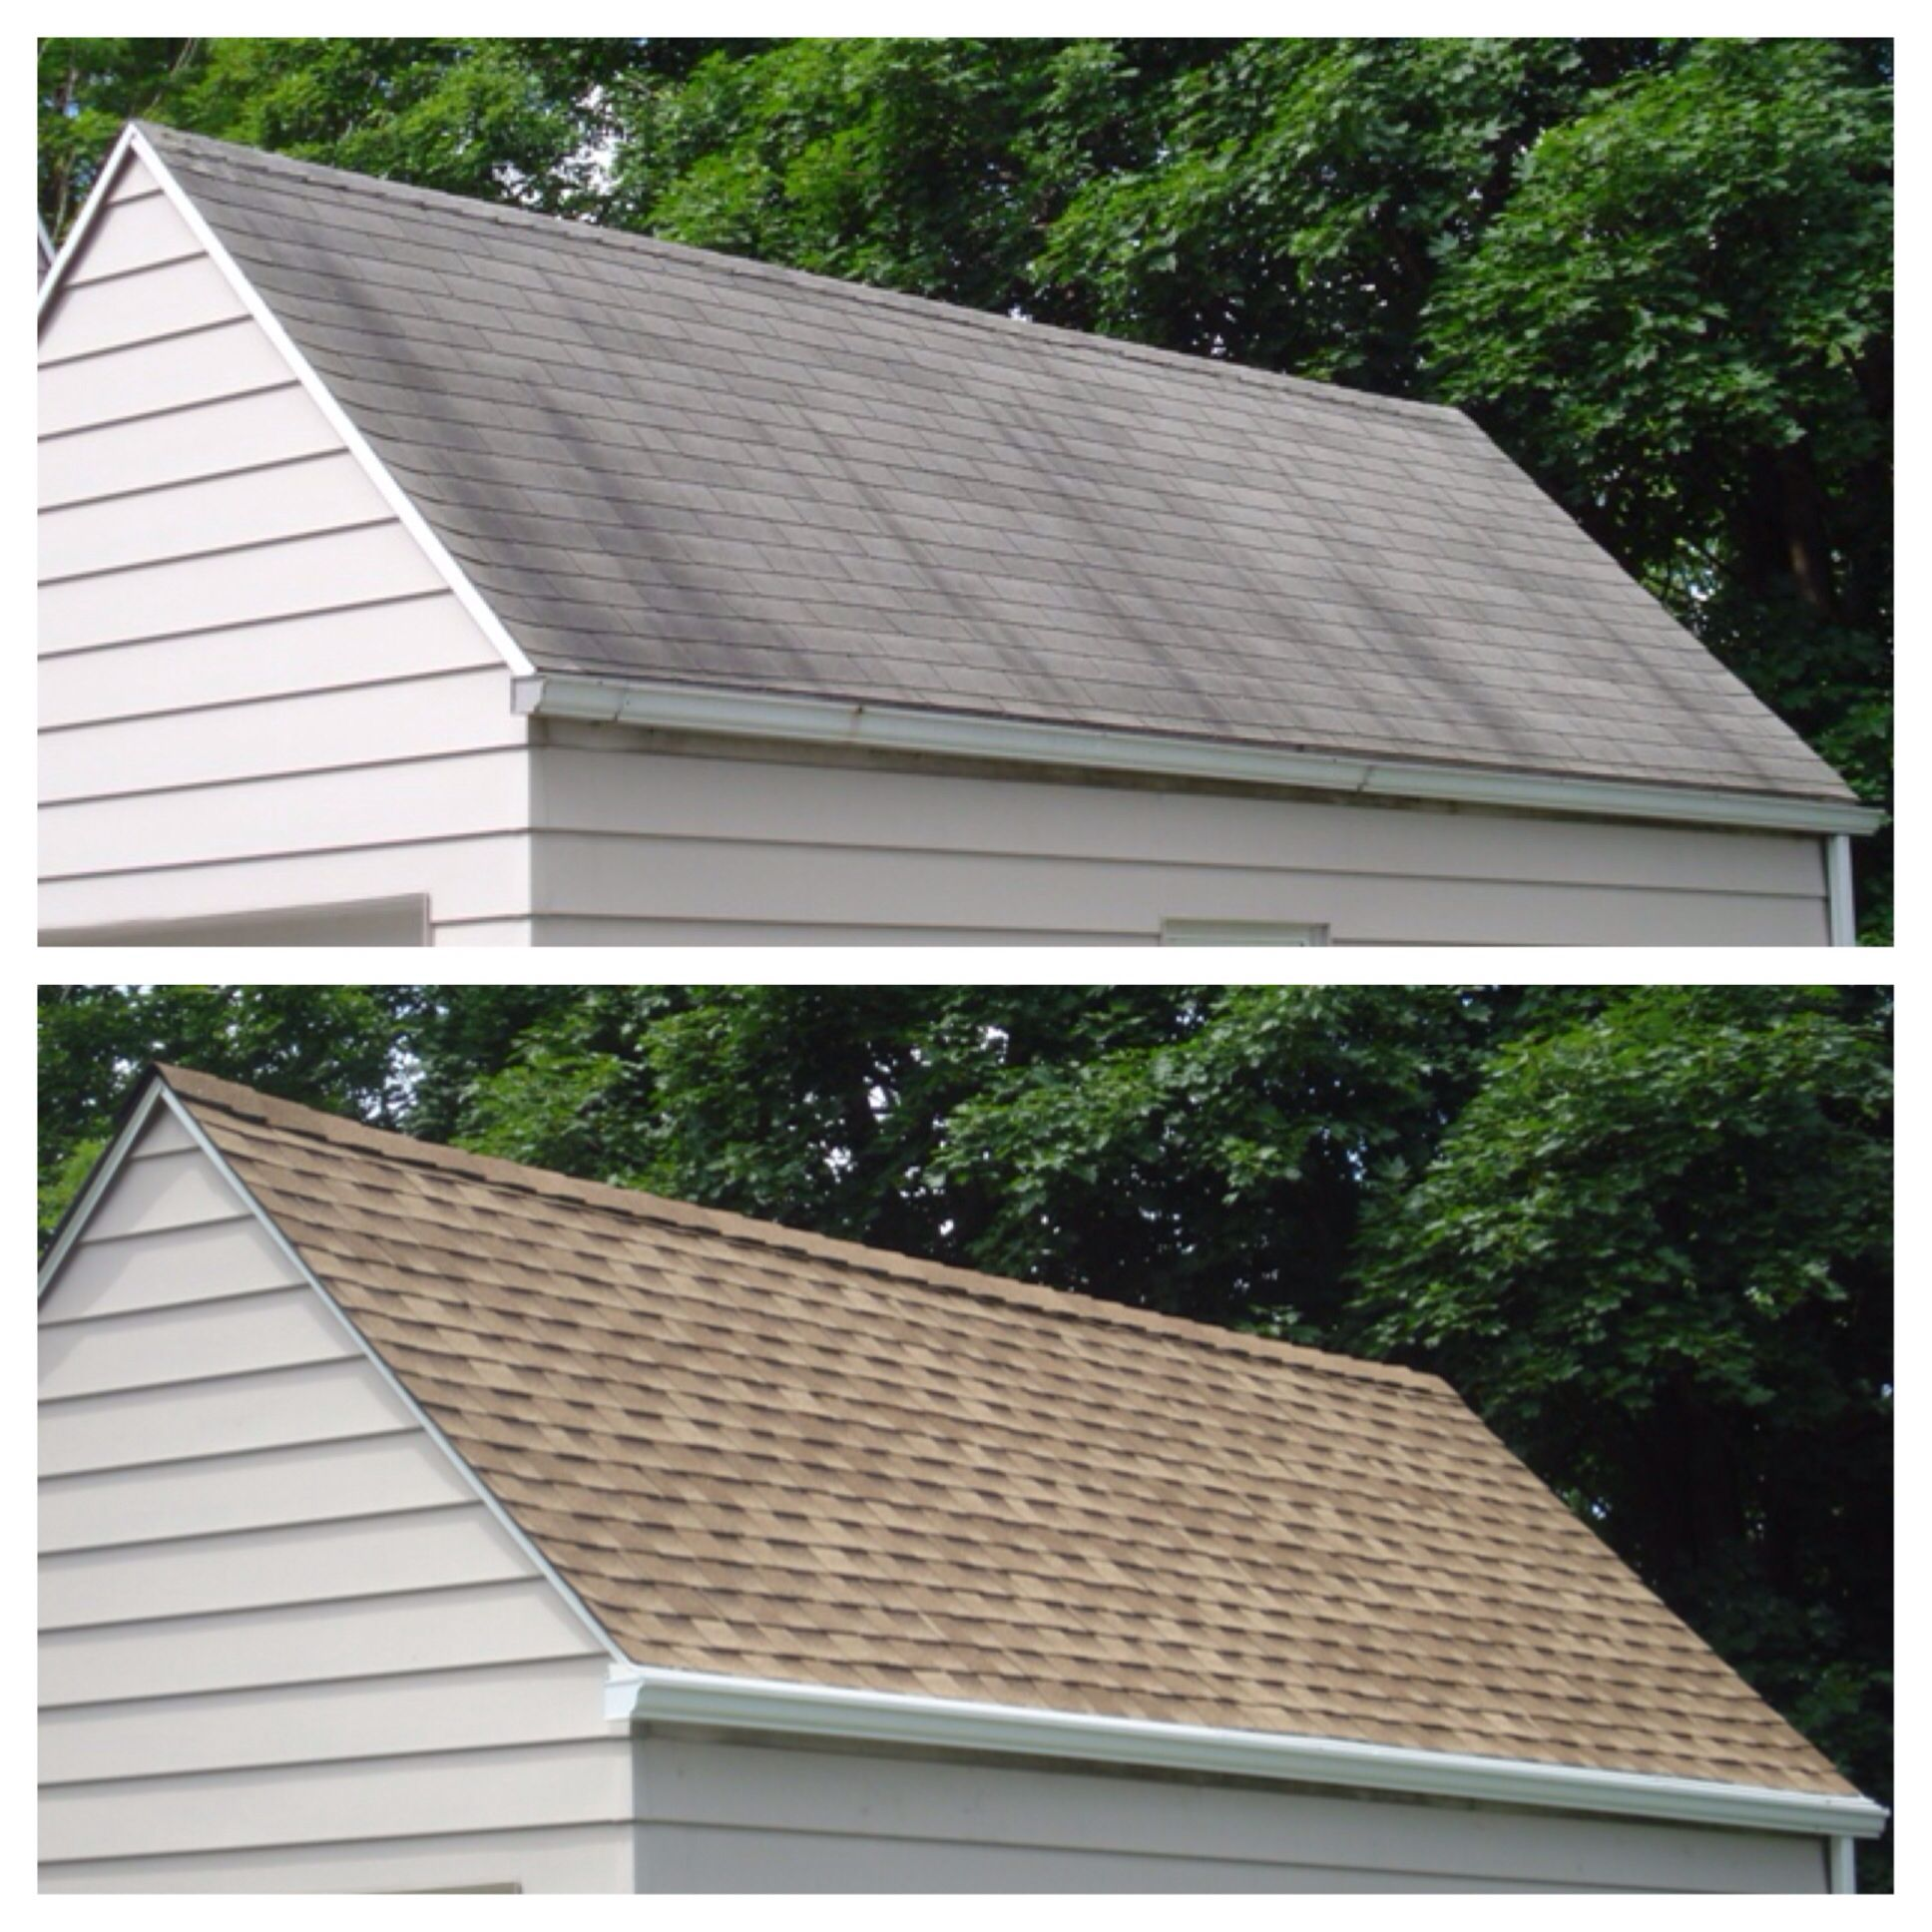 Best Completed Roofing Job With Certainteed Architectural 640 x 480